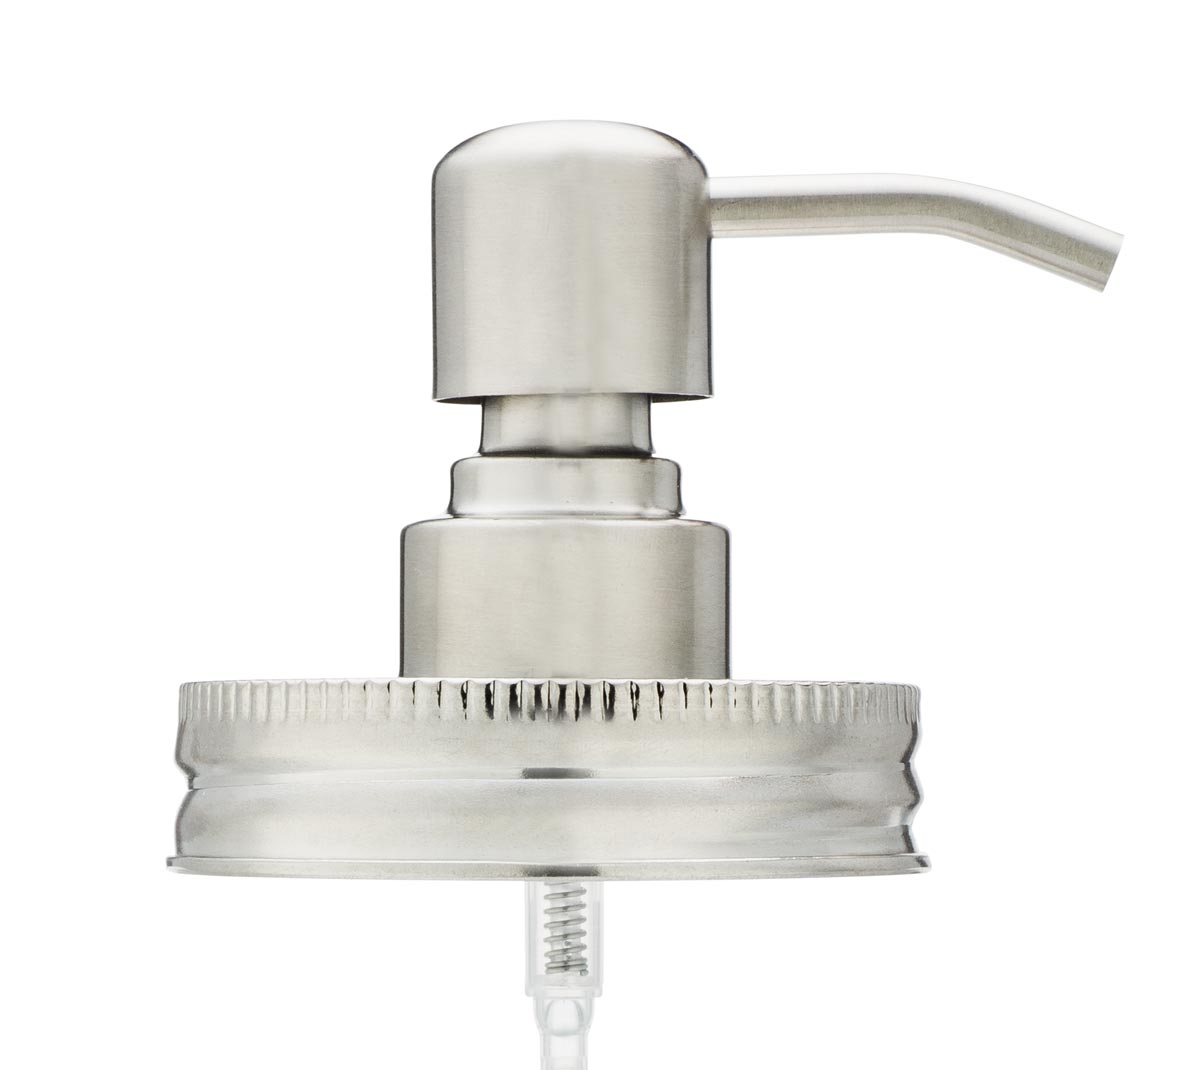 Stainless Steel Mason Jar Foaming Soap Dispenser Top Only Side View